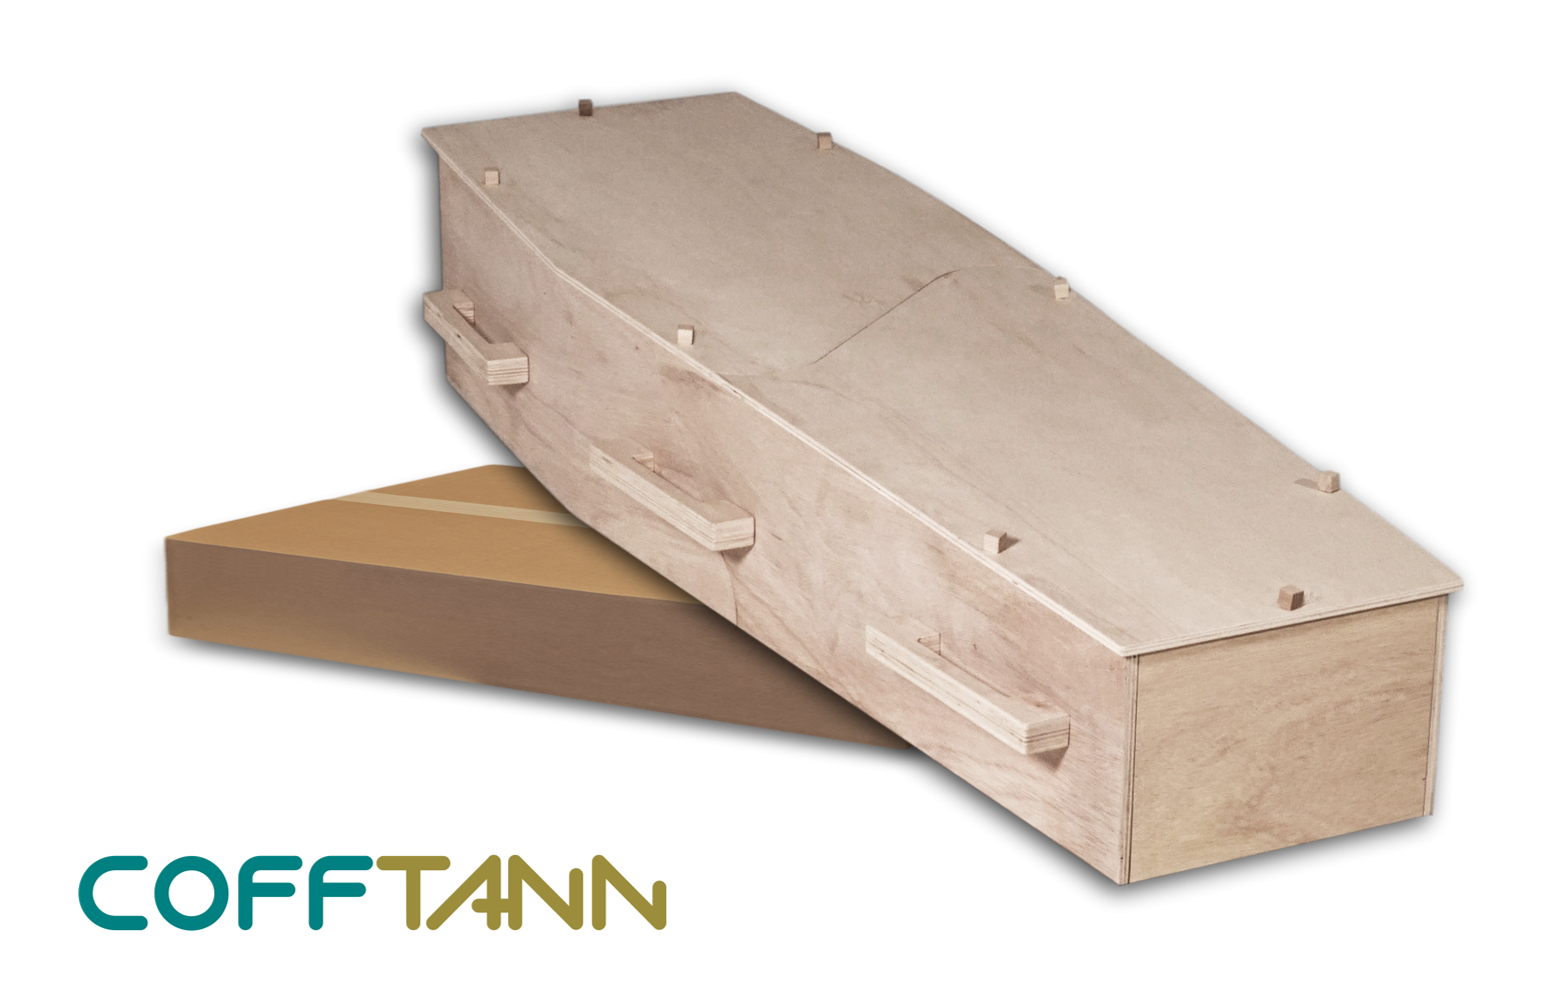 COFFTANN DIY flatpacked coffin in a box